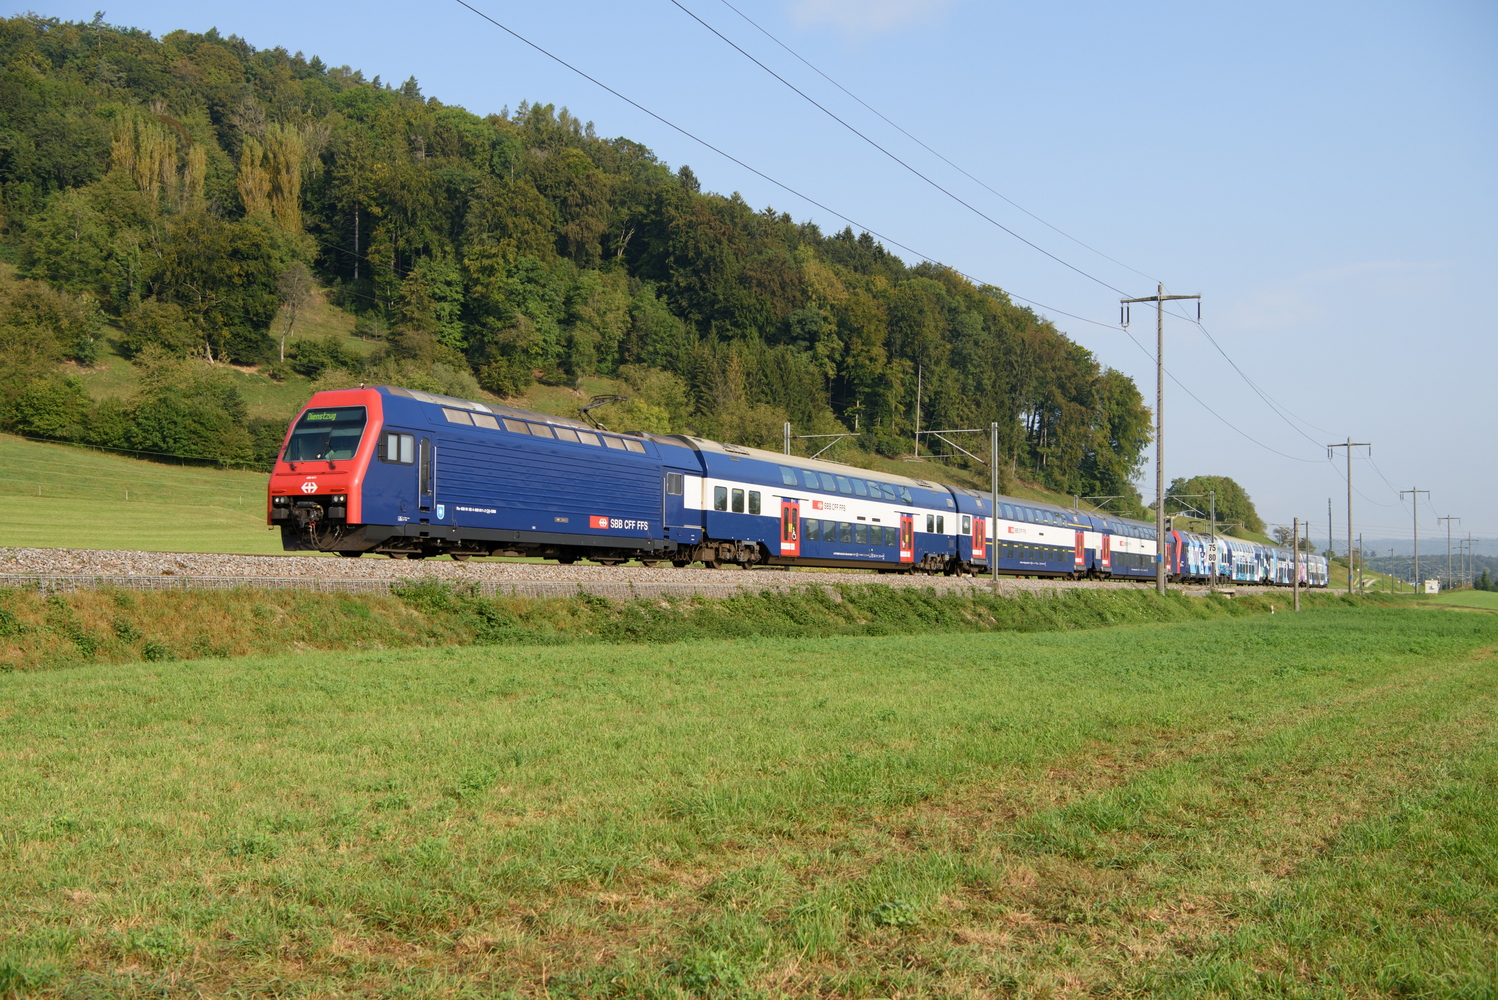 SBB Re 450 011-2 Oberrieden 016-1 Zäme Züri 02.jpg